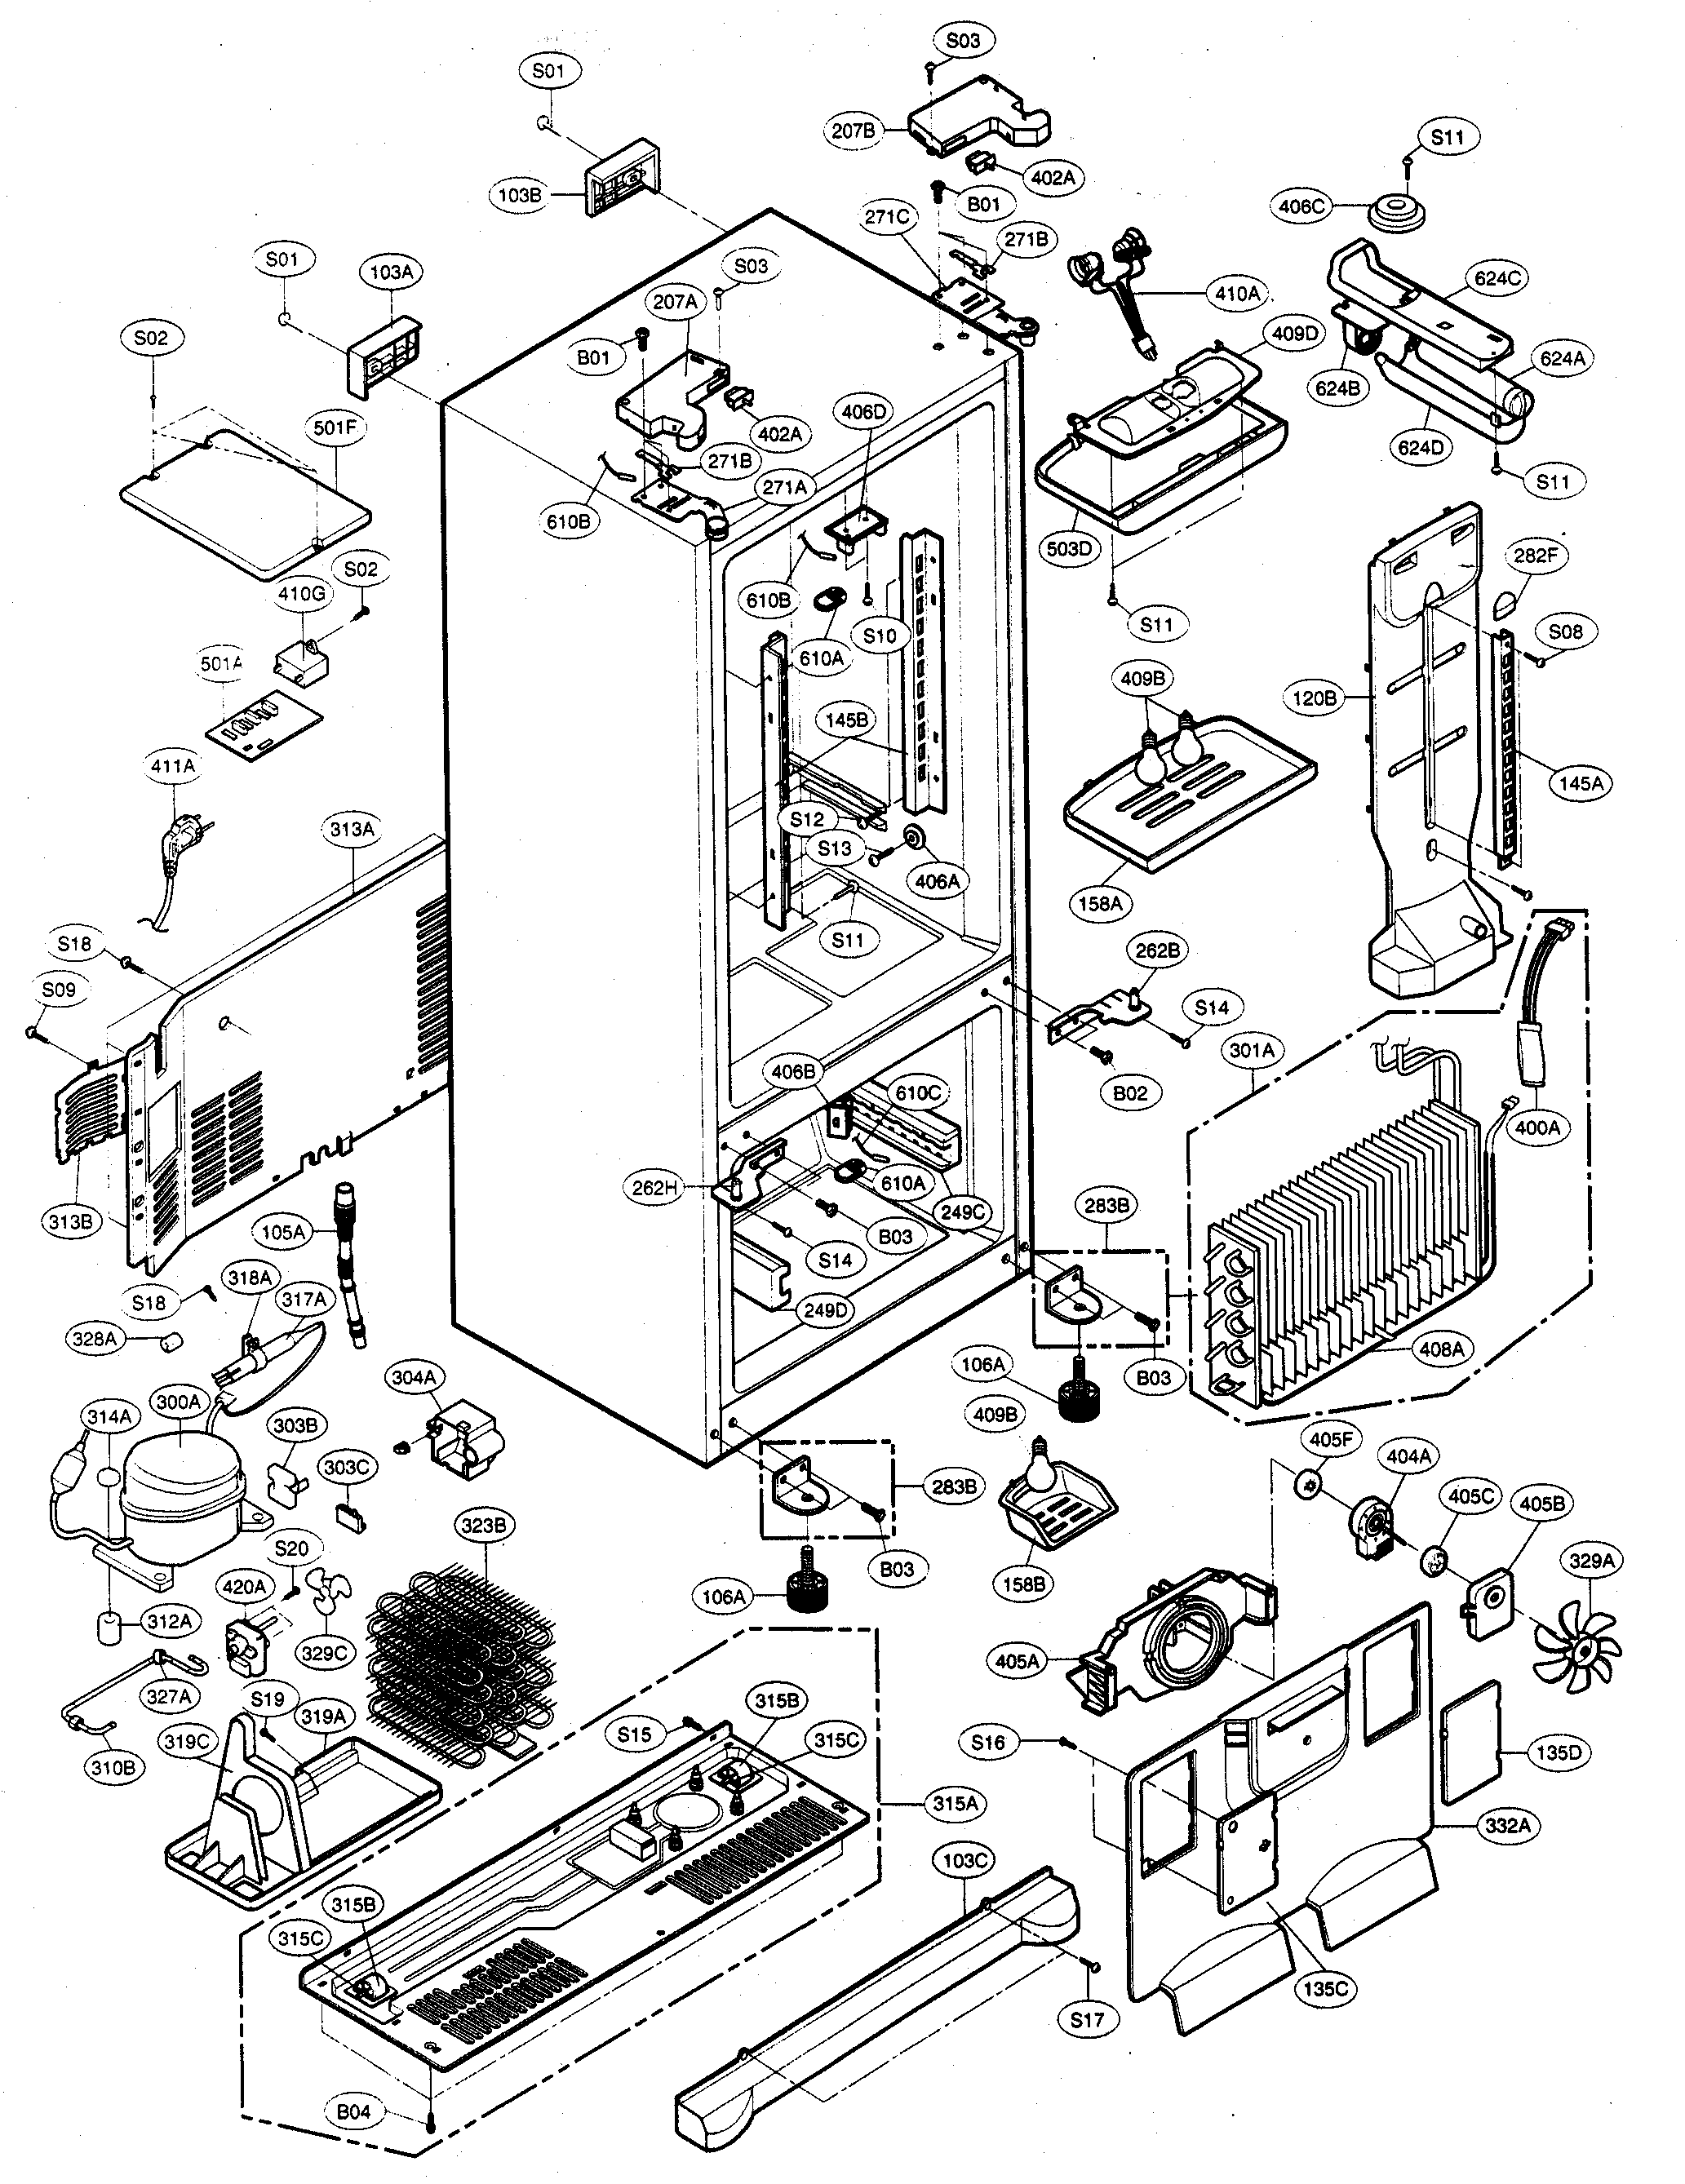 [WQZT_9871]  ZL_0386] Refrigerator Parts Diagram On Kenmore 795 Refrigerator Parts  Diagram Free Diagram | Sears Freezer Wiring Diagram |  | Pical Joami Kargi Peted Tivexi Lious Inrebe Mohammedshrine Librar Wiring 101